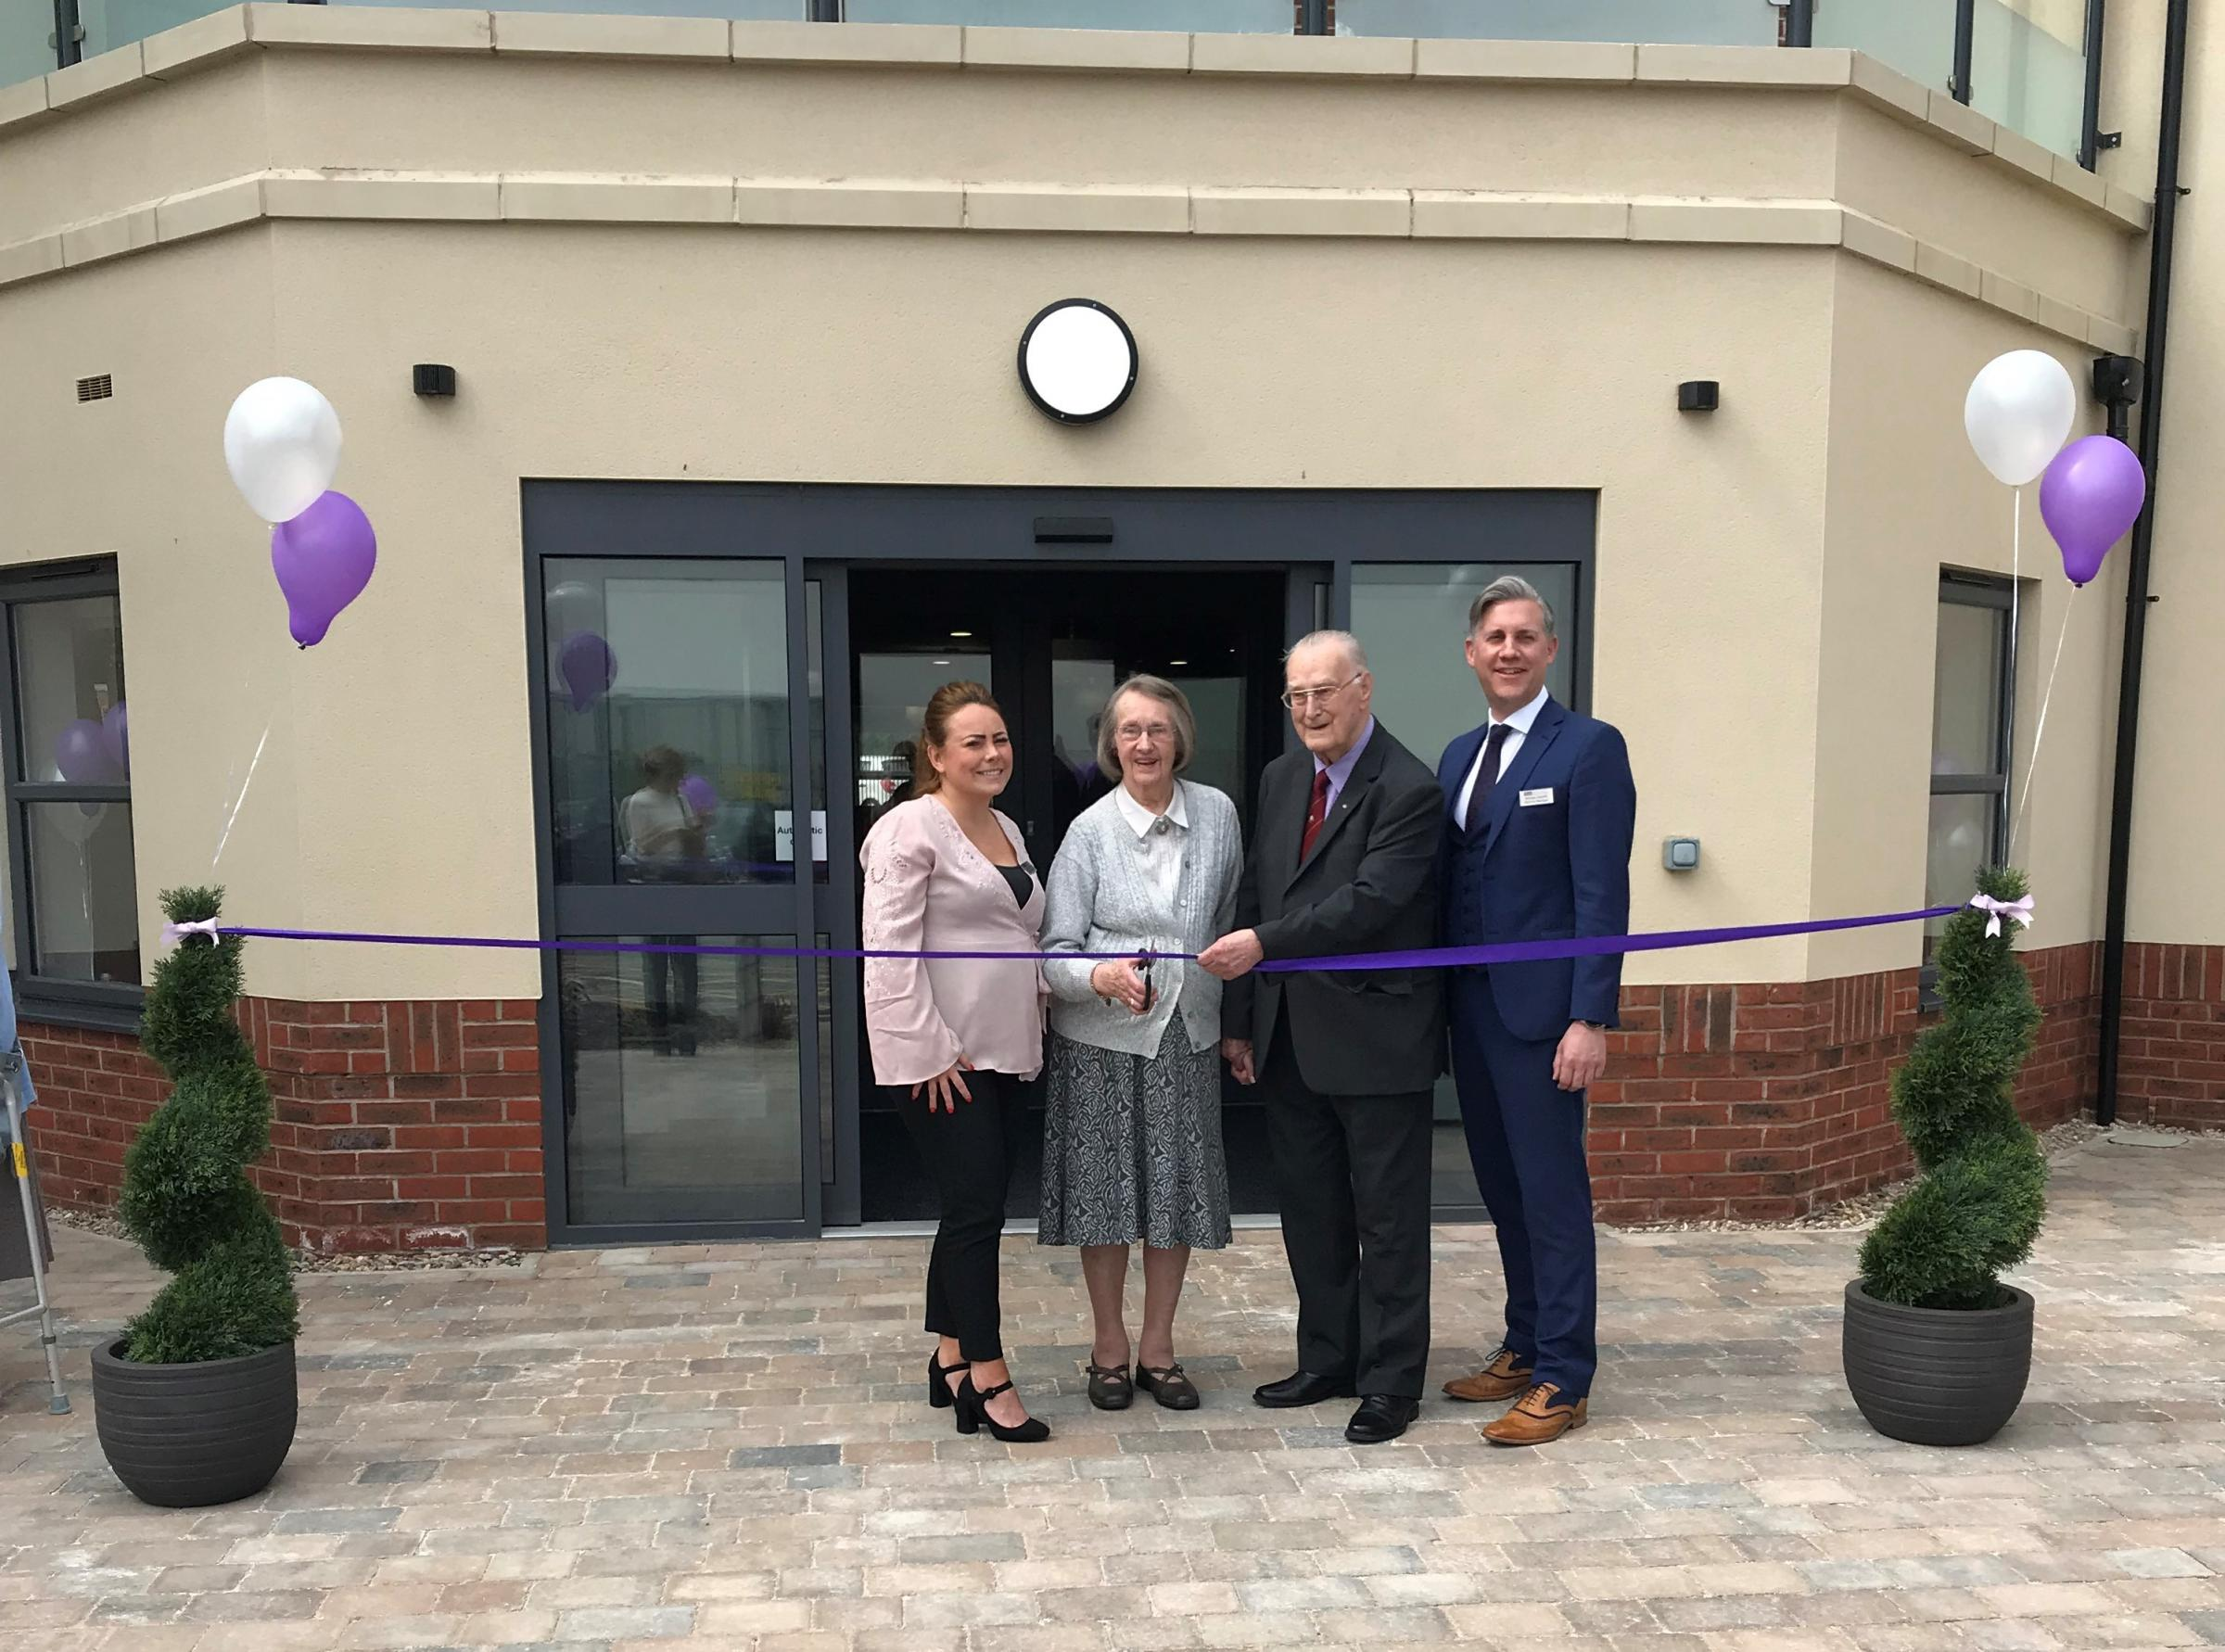 From left: Registered home manager, Rachel McNally, Dorothy Harrison, Ebor Court resident and former payroll administrator at Handley Page, Norman Spencer, museum volunteer and care home general manager, Michael Gledhill